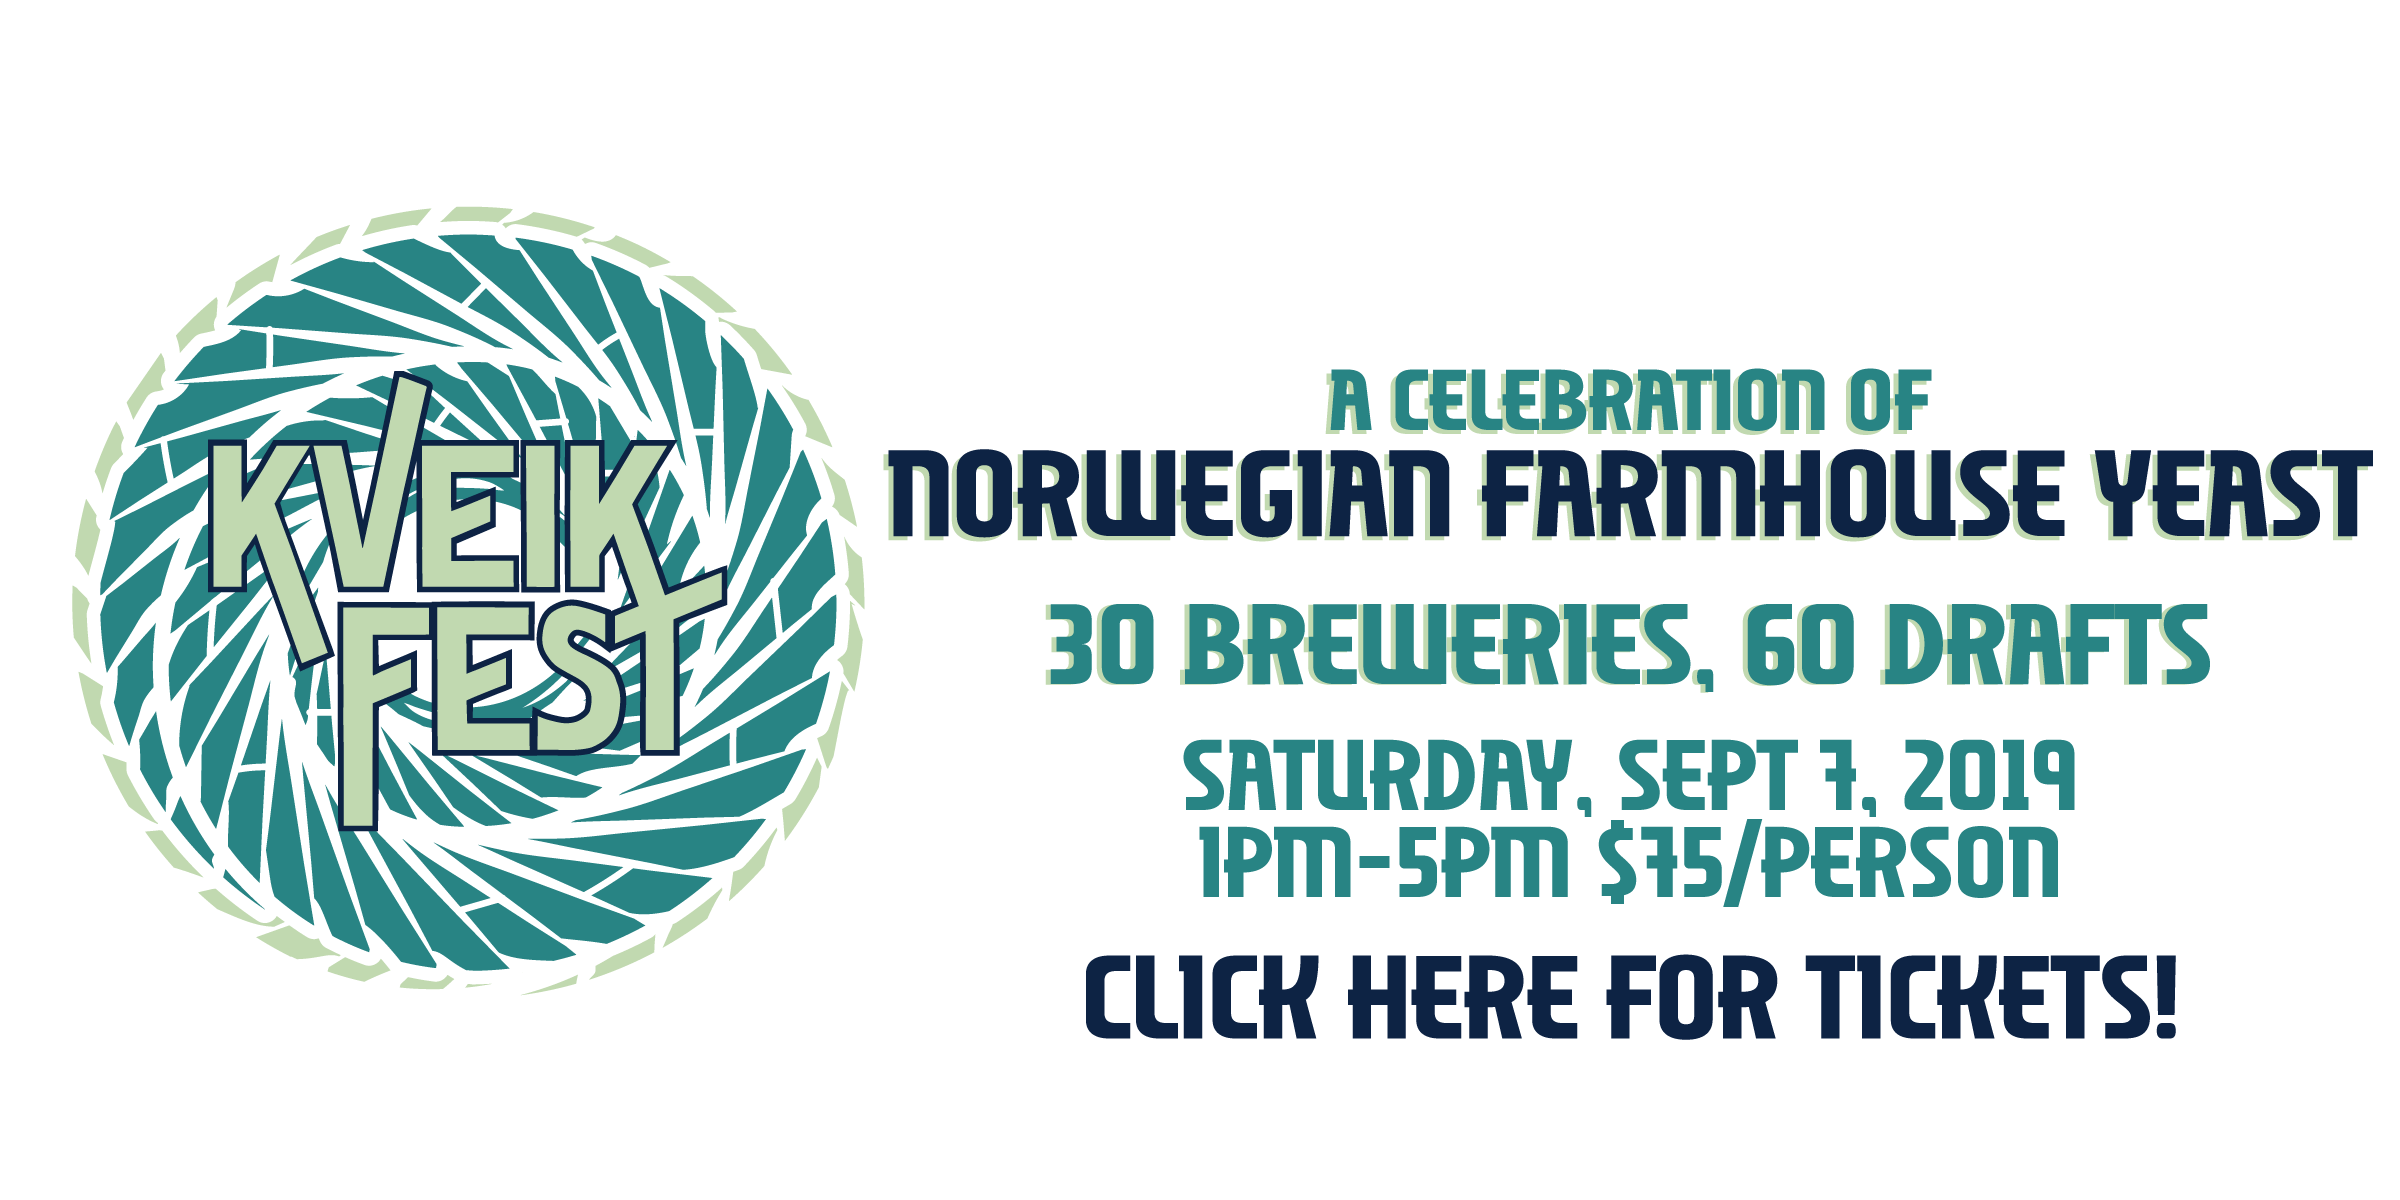 Kveik Fest, a celebration of Norwegian farmhouse yeast. 30 breweries, 60 drafts. Satruday, Sept. 7th, 1pm-5pm $75/person. Click here for tickets!